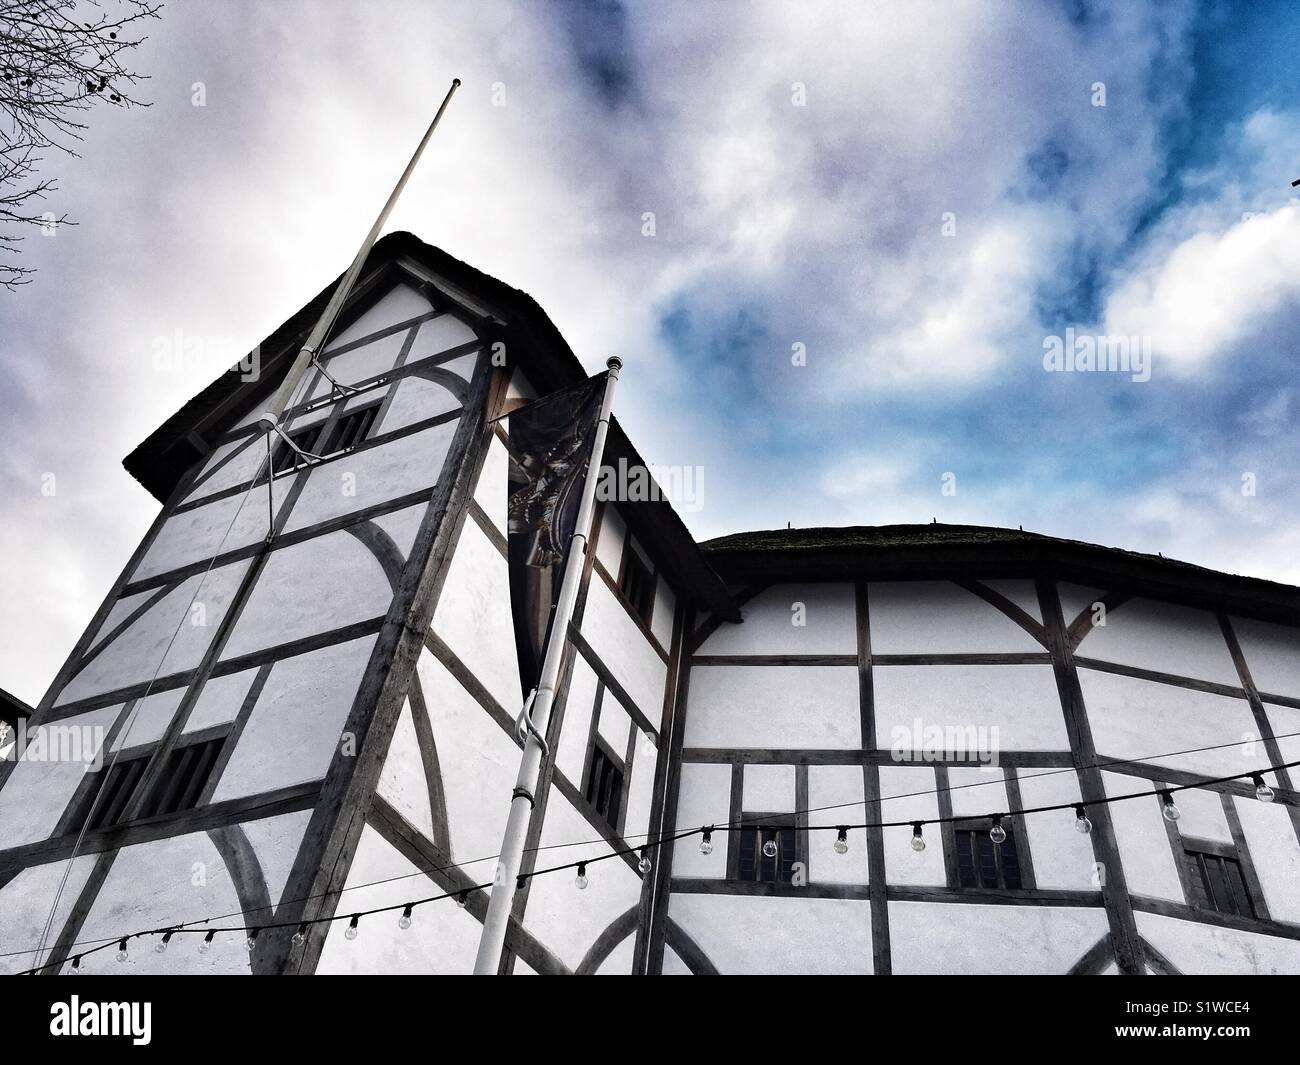 Shakespeare's Globe at Bankside, London in England - Stock Image